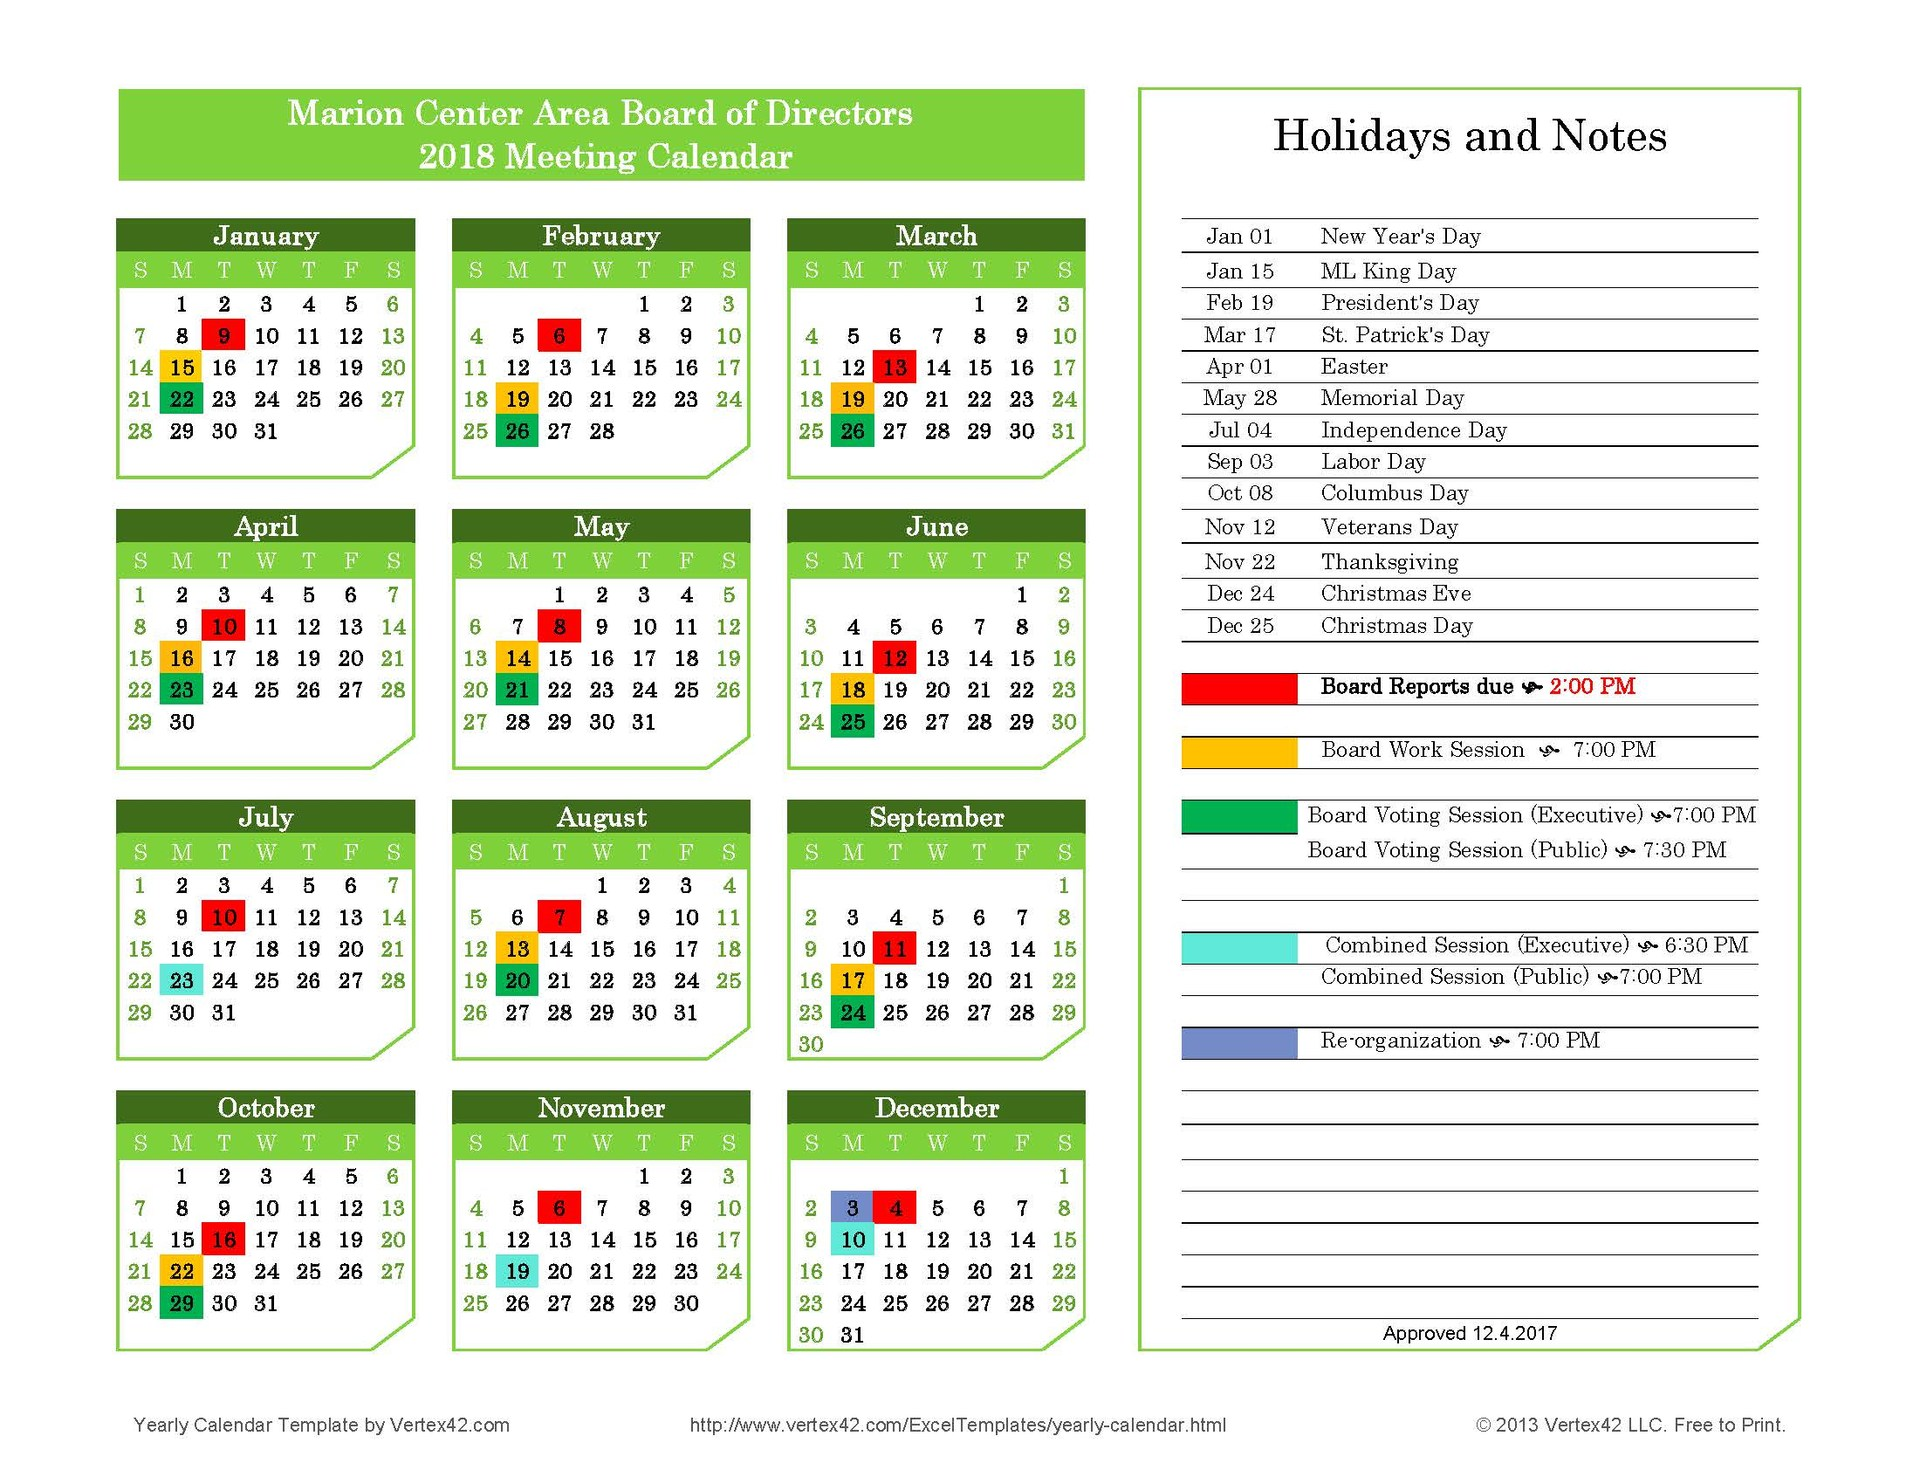 Calendar of Monthly Board Meetings